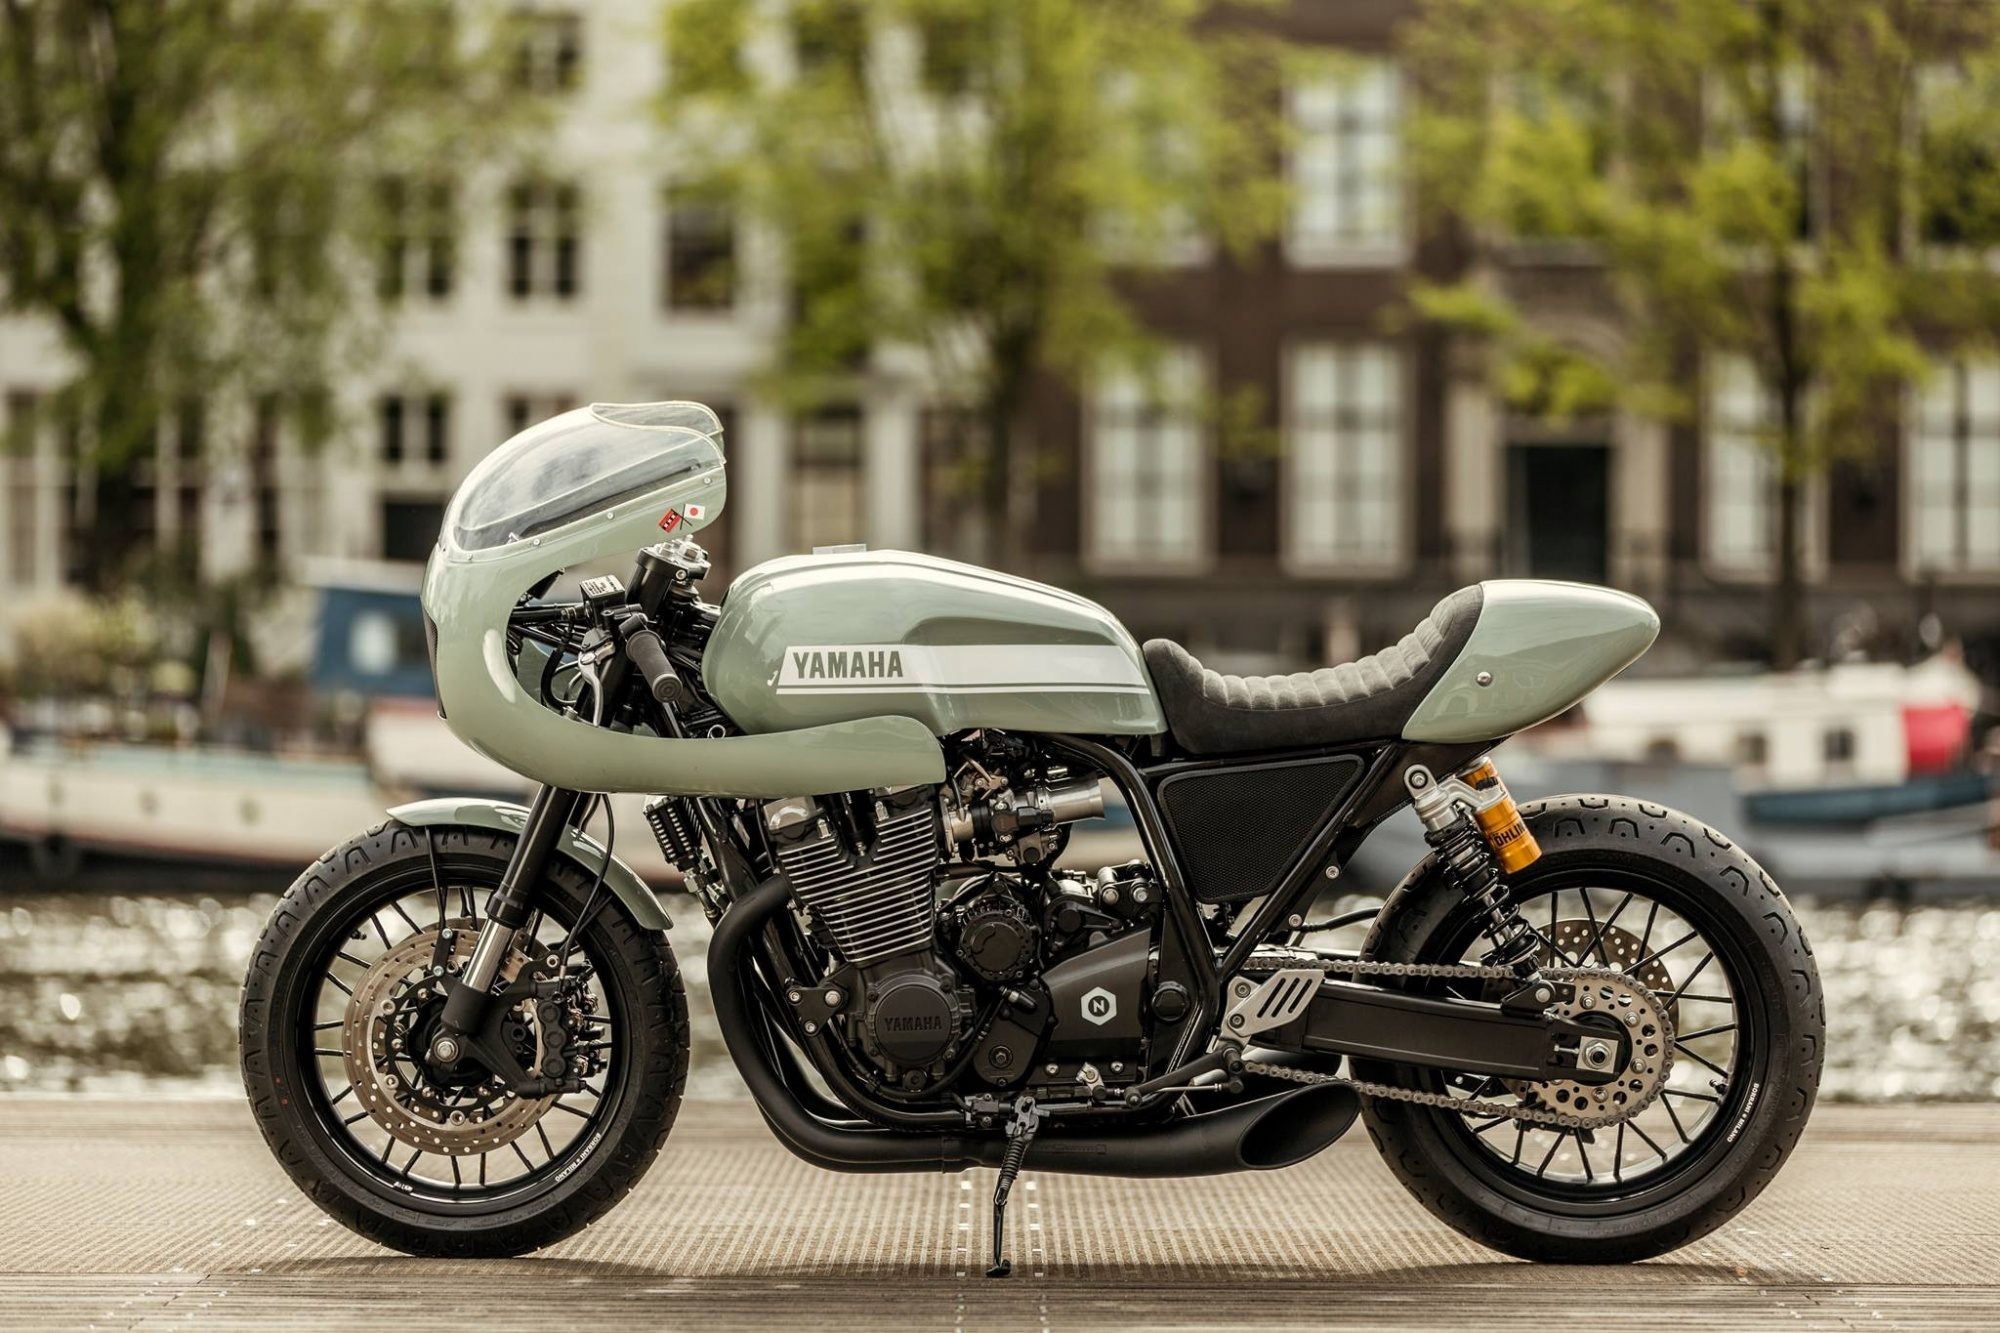 Yamaha XJR1300 'Botafogo-N' by Numbnut Motorcycles